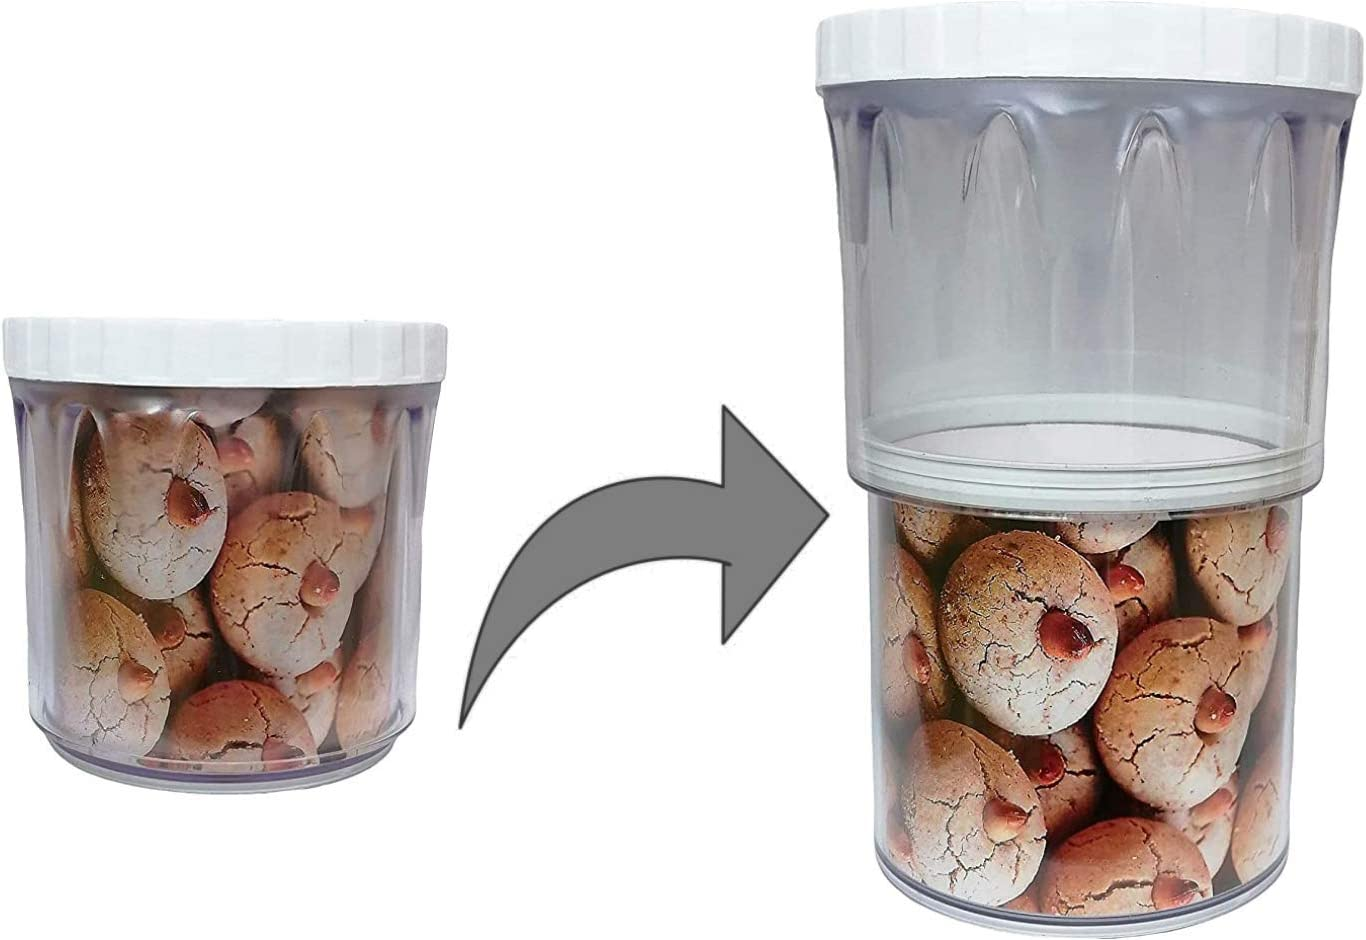 Aeon Design 2 Level Food Cereal Storage Container-Removing Air And Adjust Contents Feature-Unique Design Container-Multi Purpose Using-Glass Free And Strong Long Lasting Material-1 Piece (White)